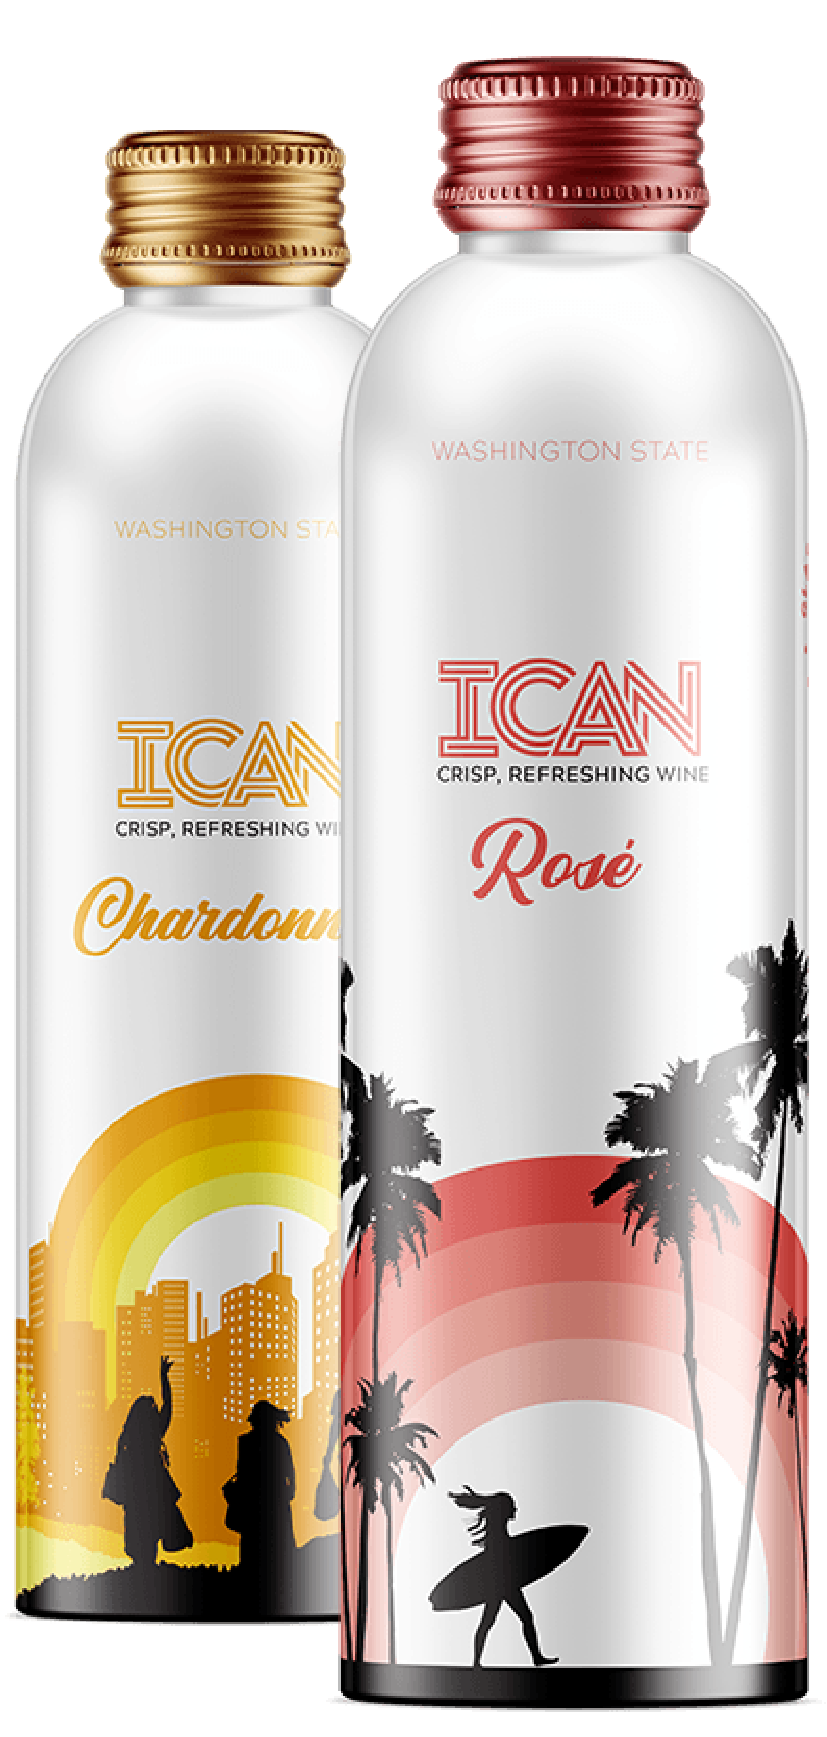 ICAN-wine-cans-15